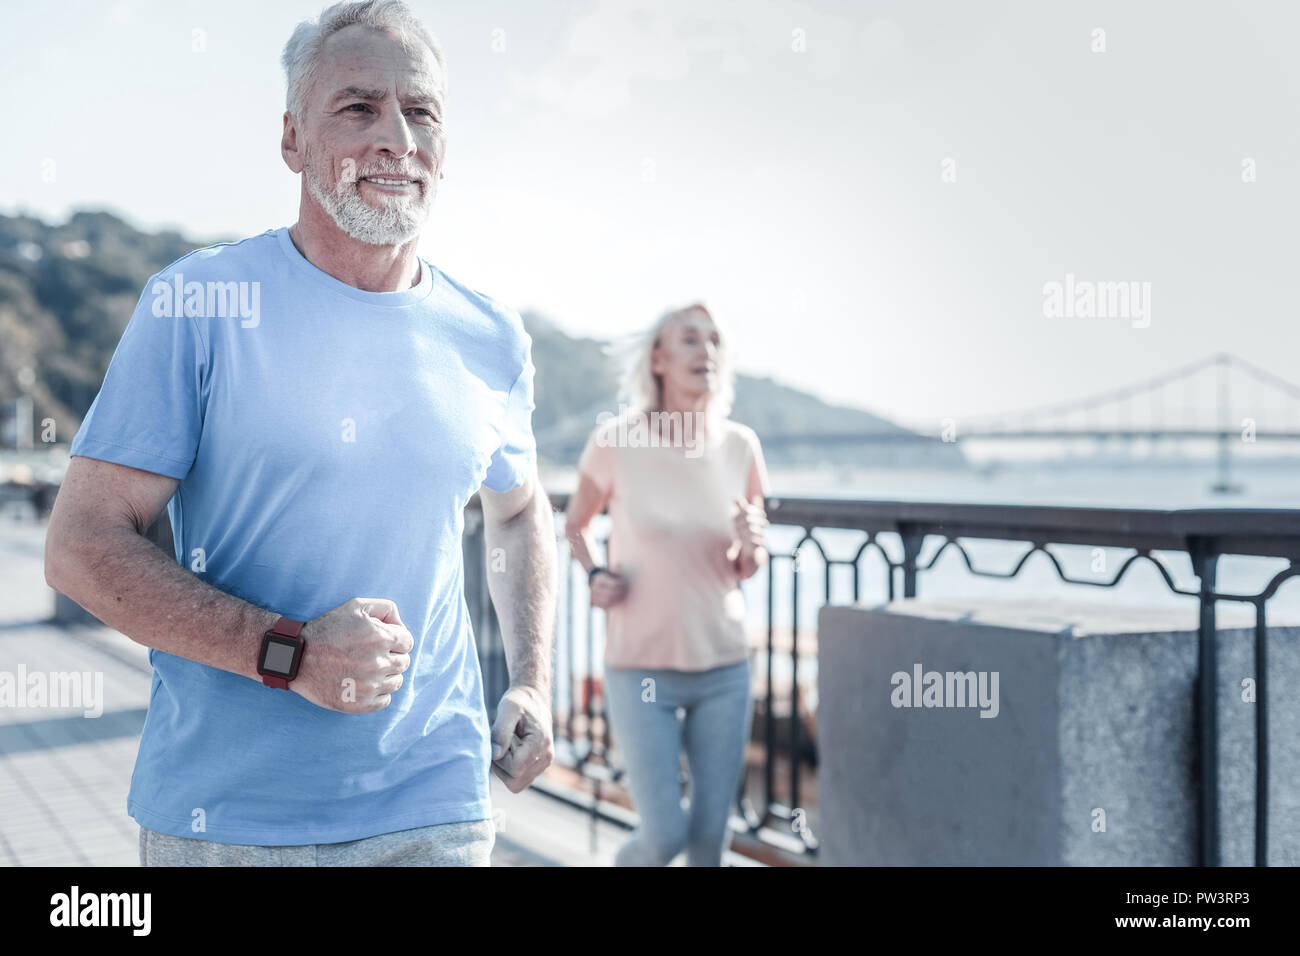 Respected people loving sport activities Stock Photo